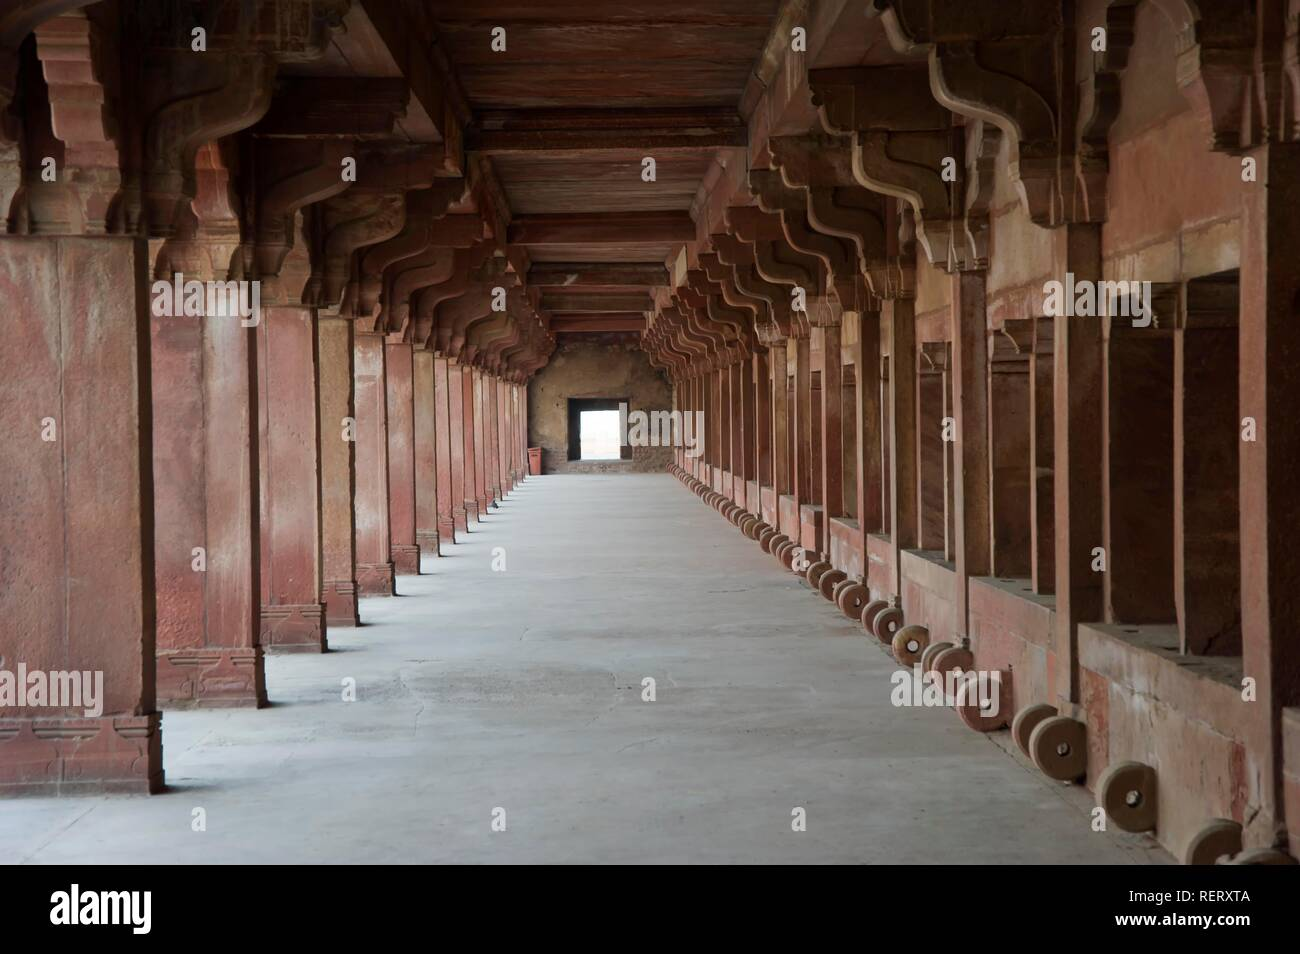 Lower Haramsara, accomodation of the servicing maids of the harem, UNESCO World Heritage Site, Fatehpur Sikri, Uttar Pradesh - Stock Image